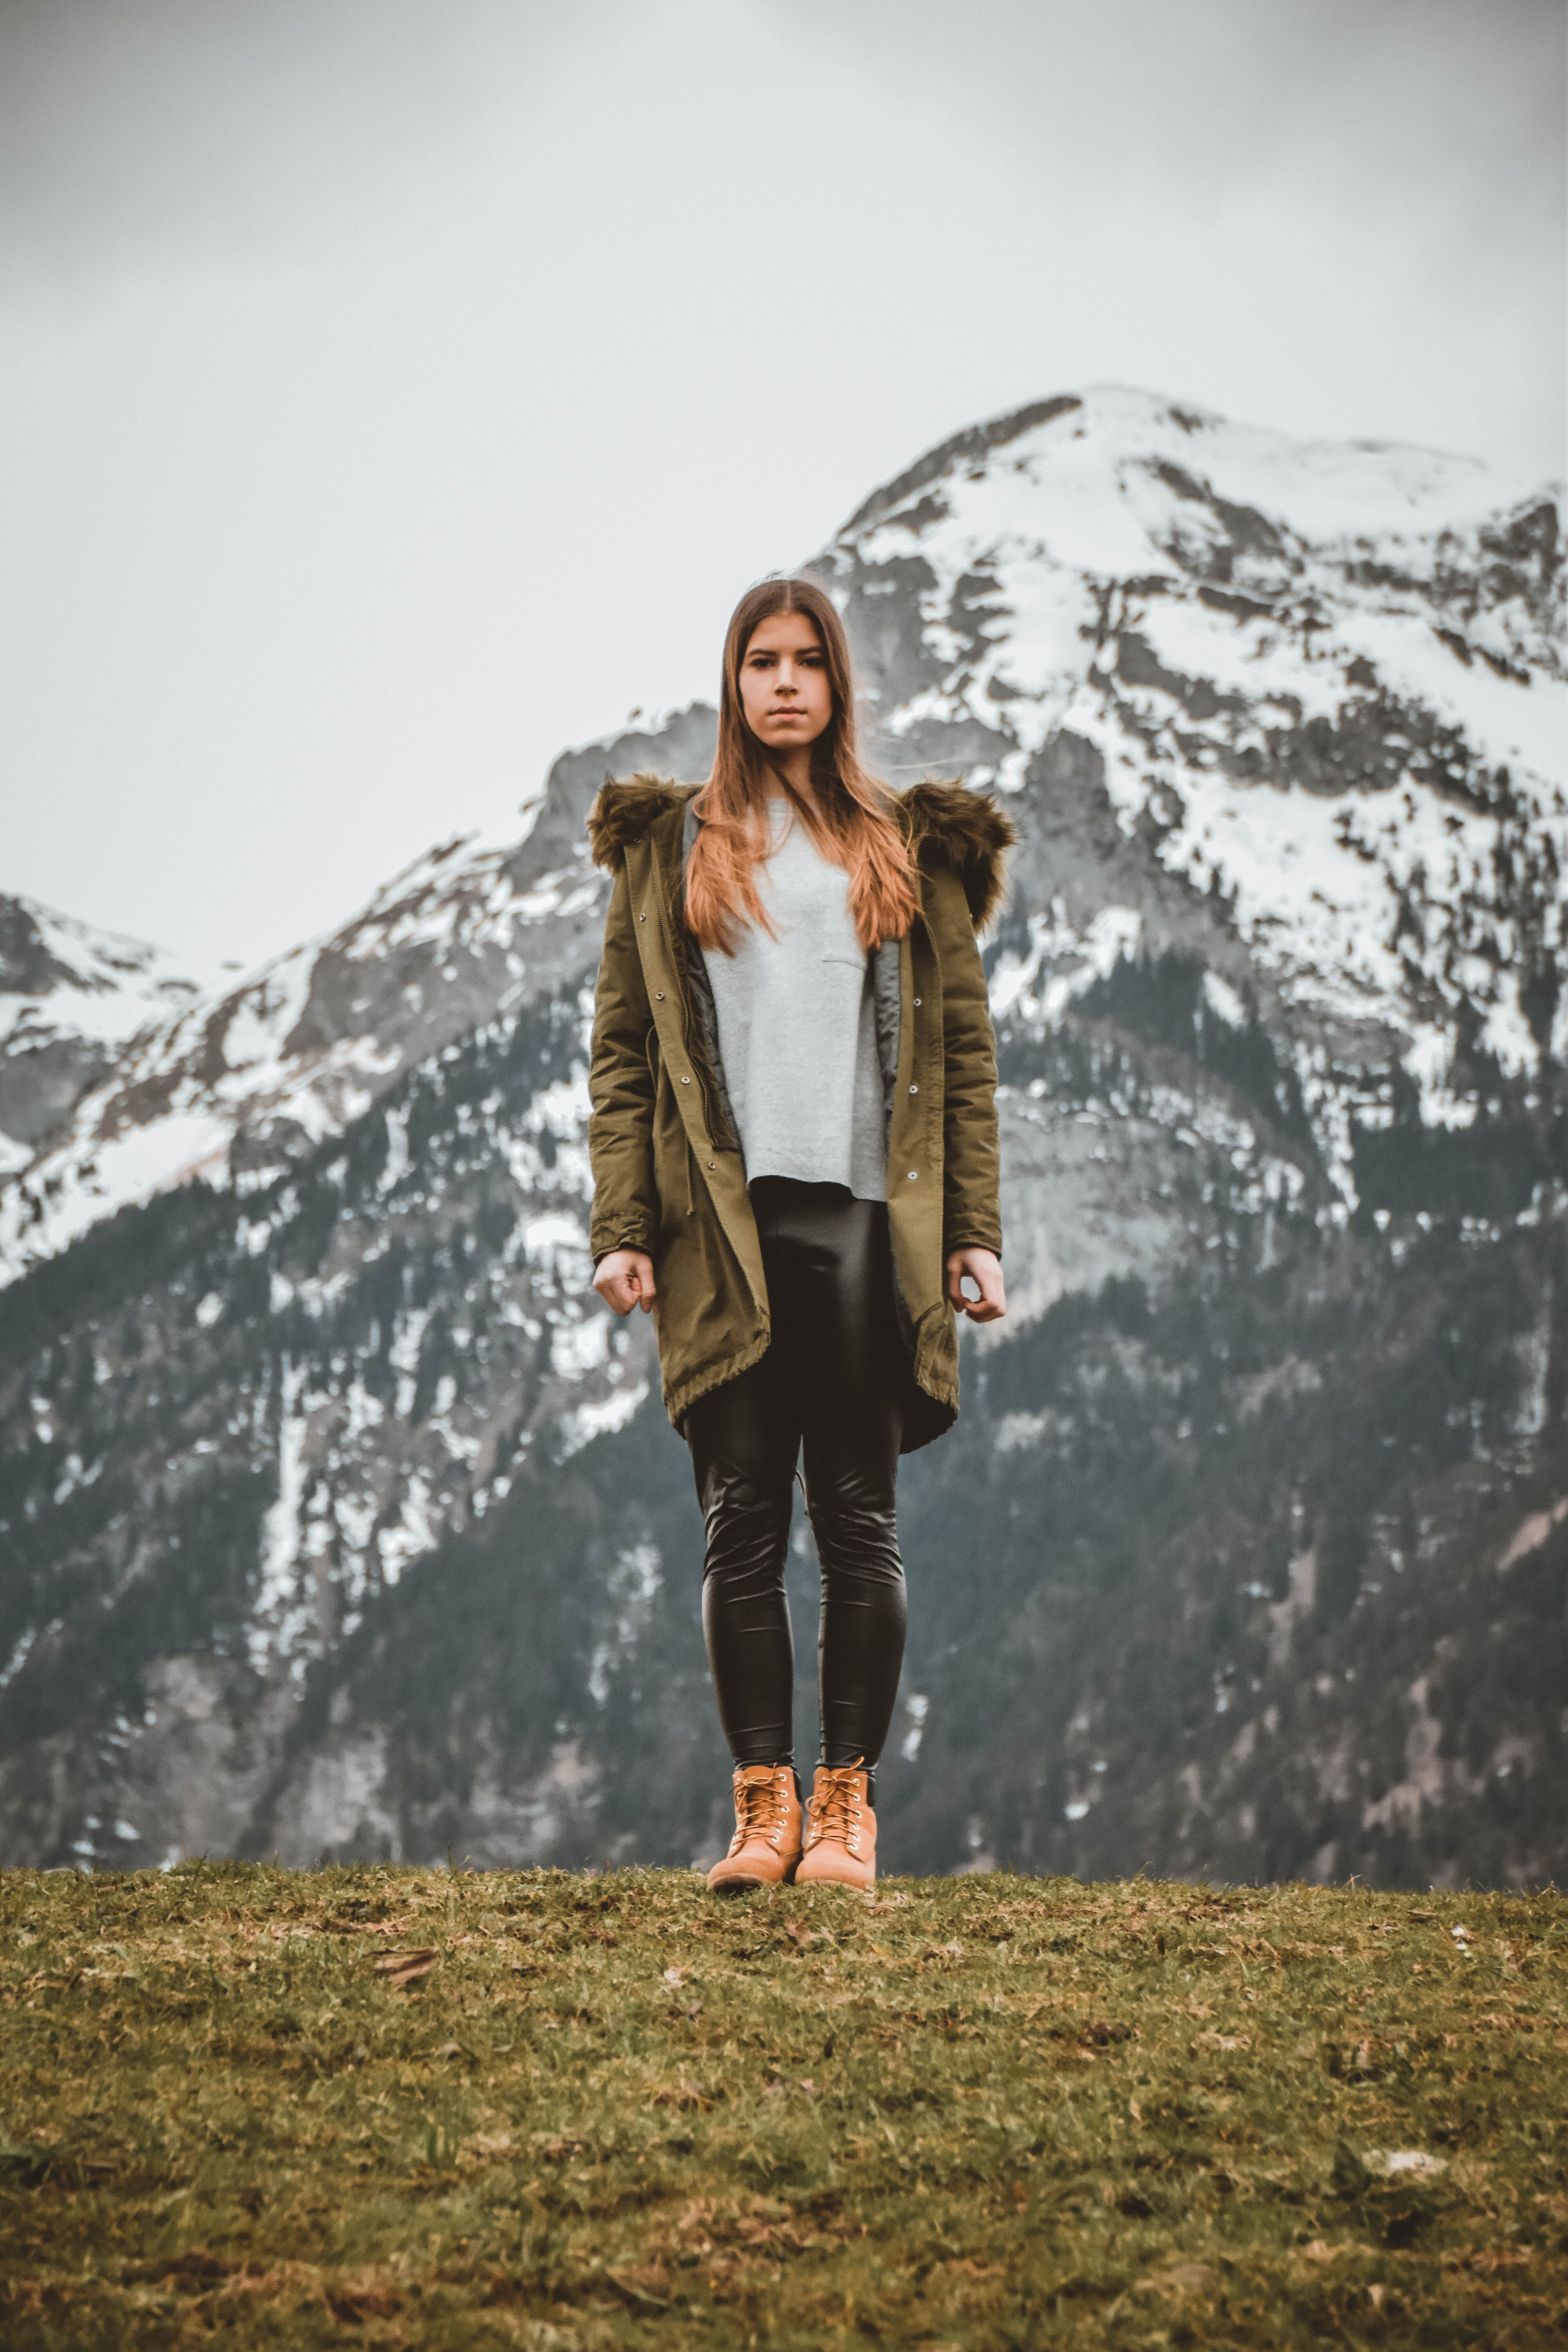 Woman Wearing Green Jacket in Front of Snowy Mountain